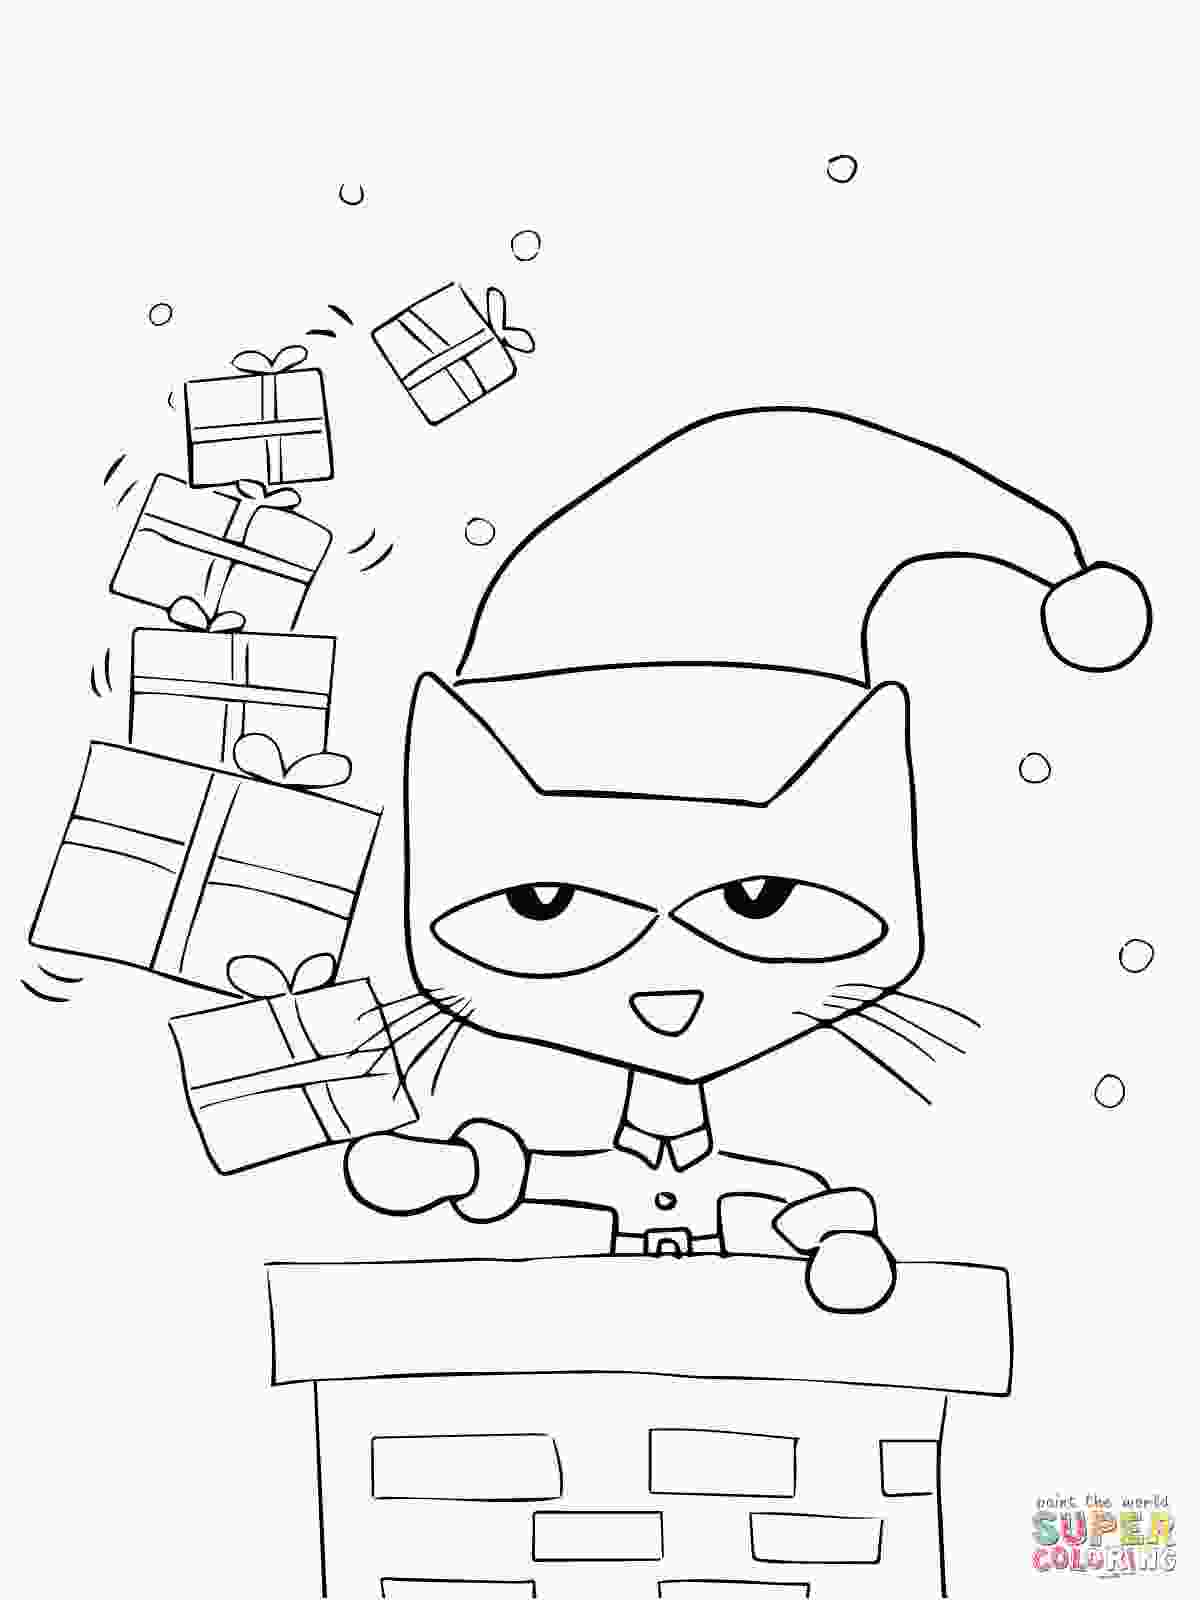 pete the cat coloring pages pete the cat coloring sheet 15 linearts for free